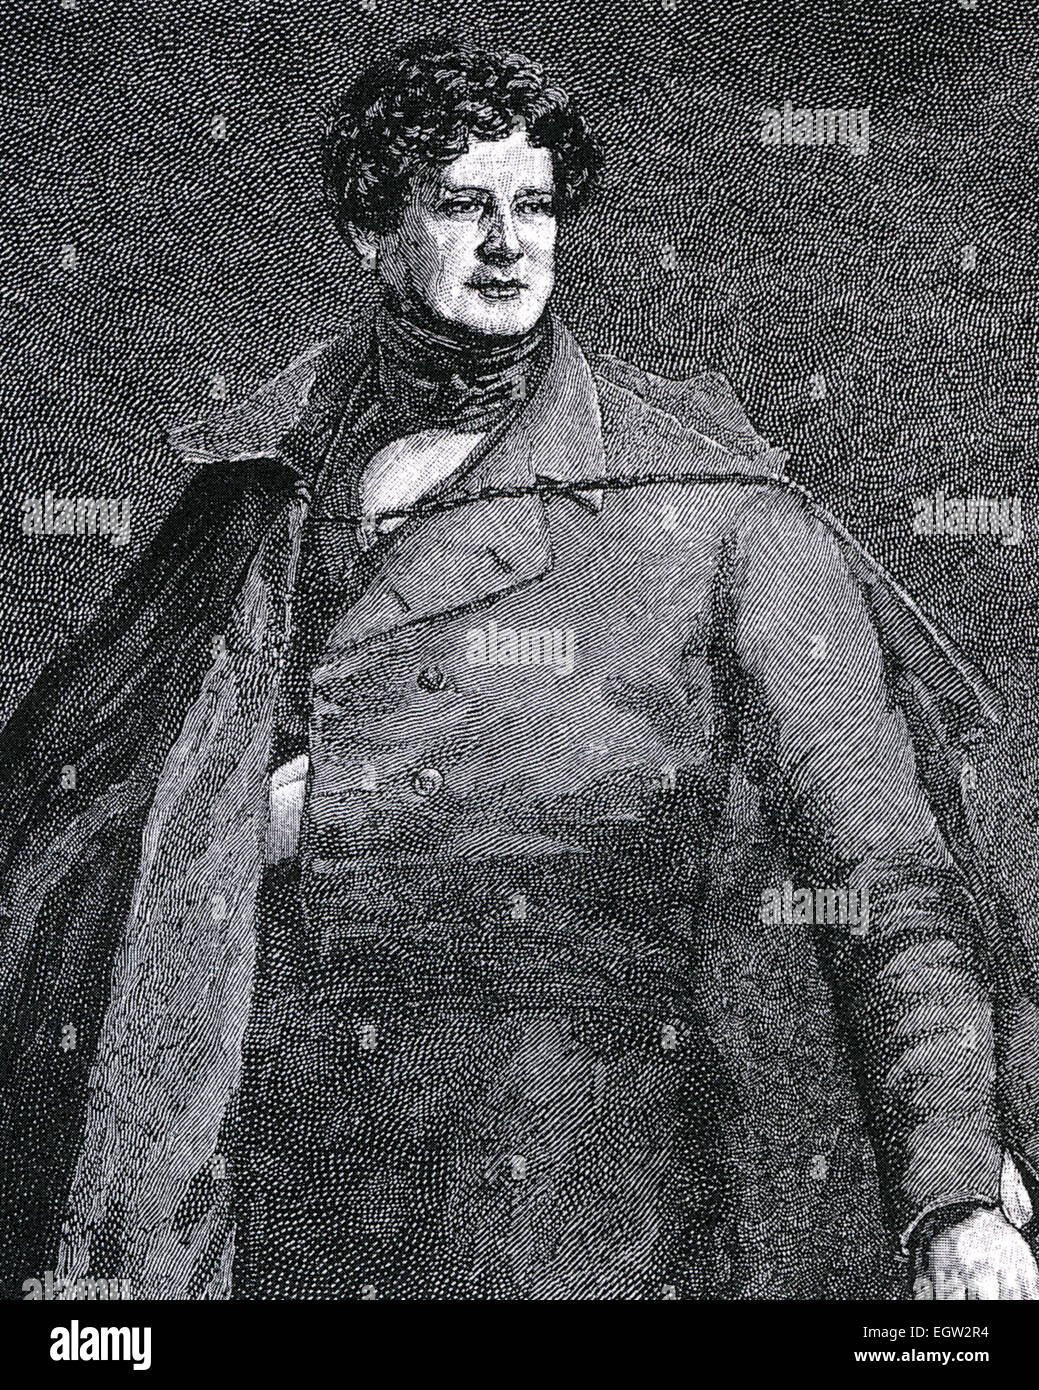 DANIEL O'CONNELL (1775-1847) Irish political leader known as The Emancipator - Stock Image